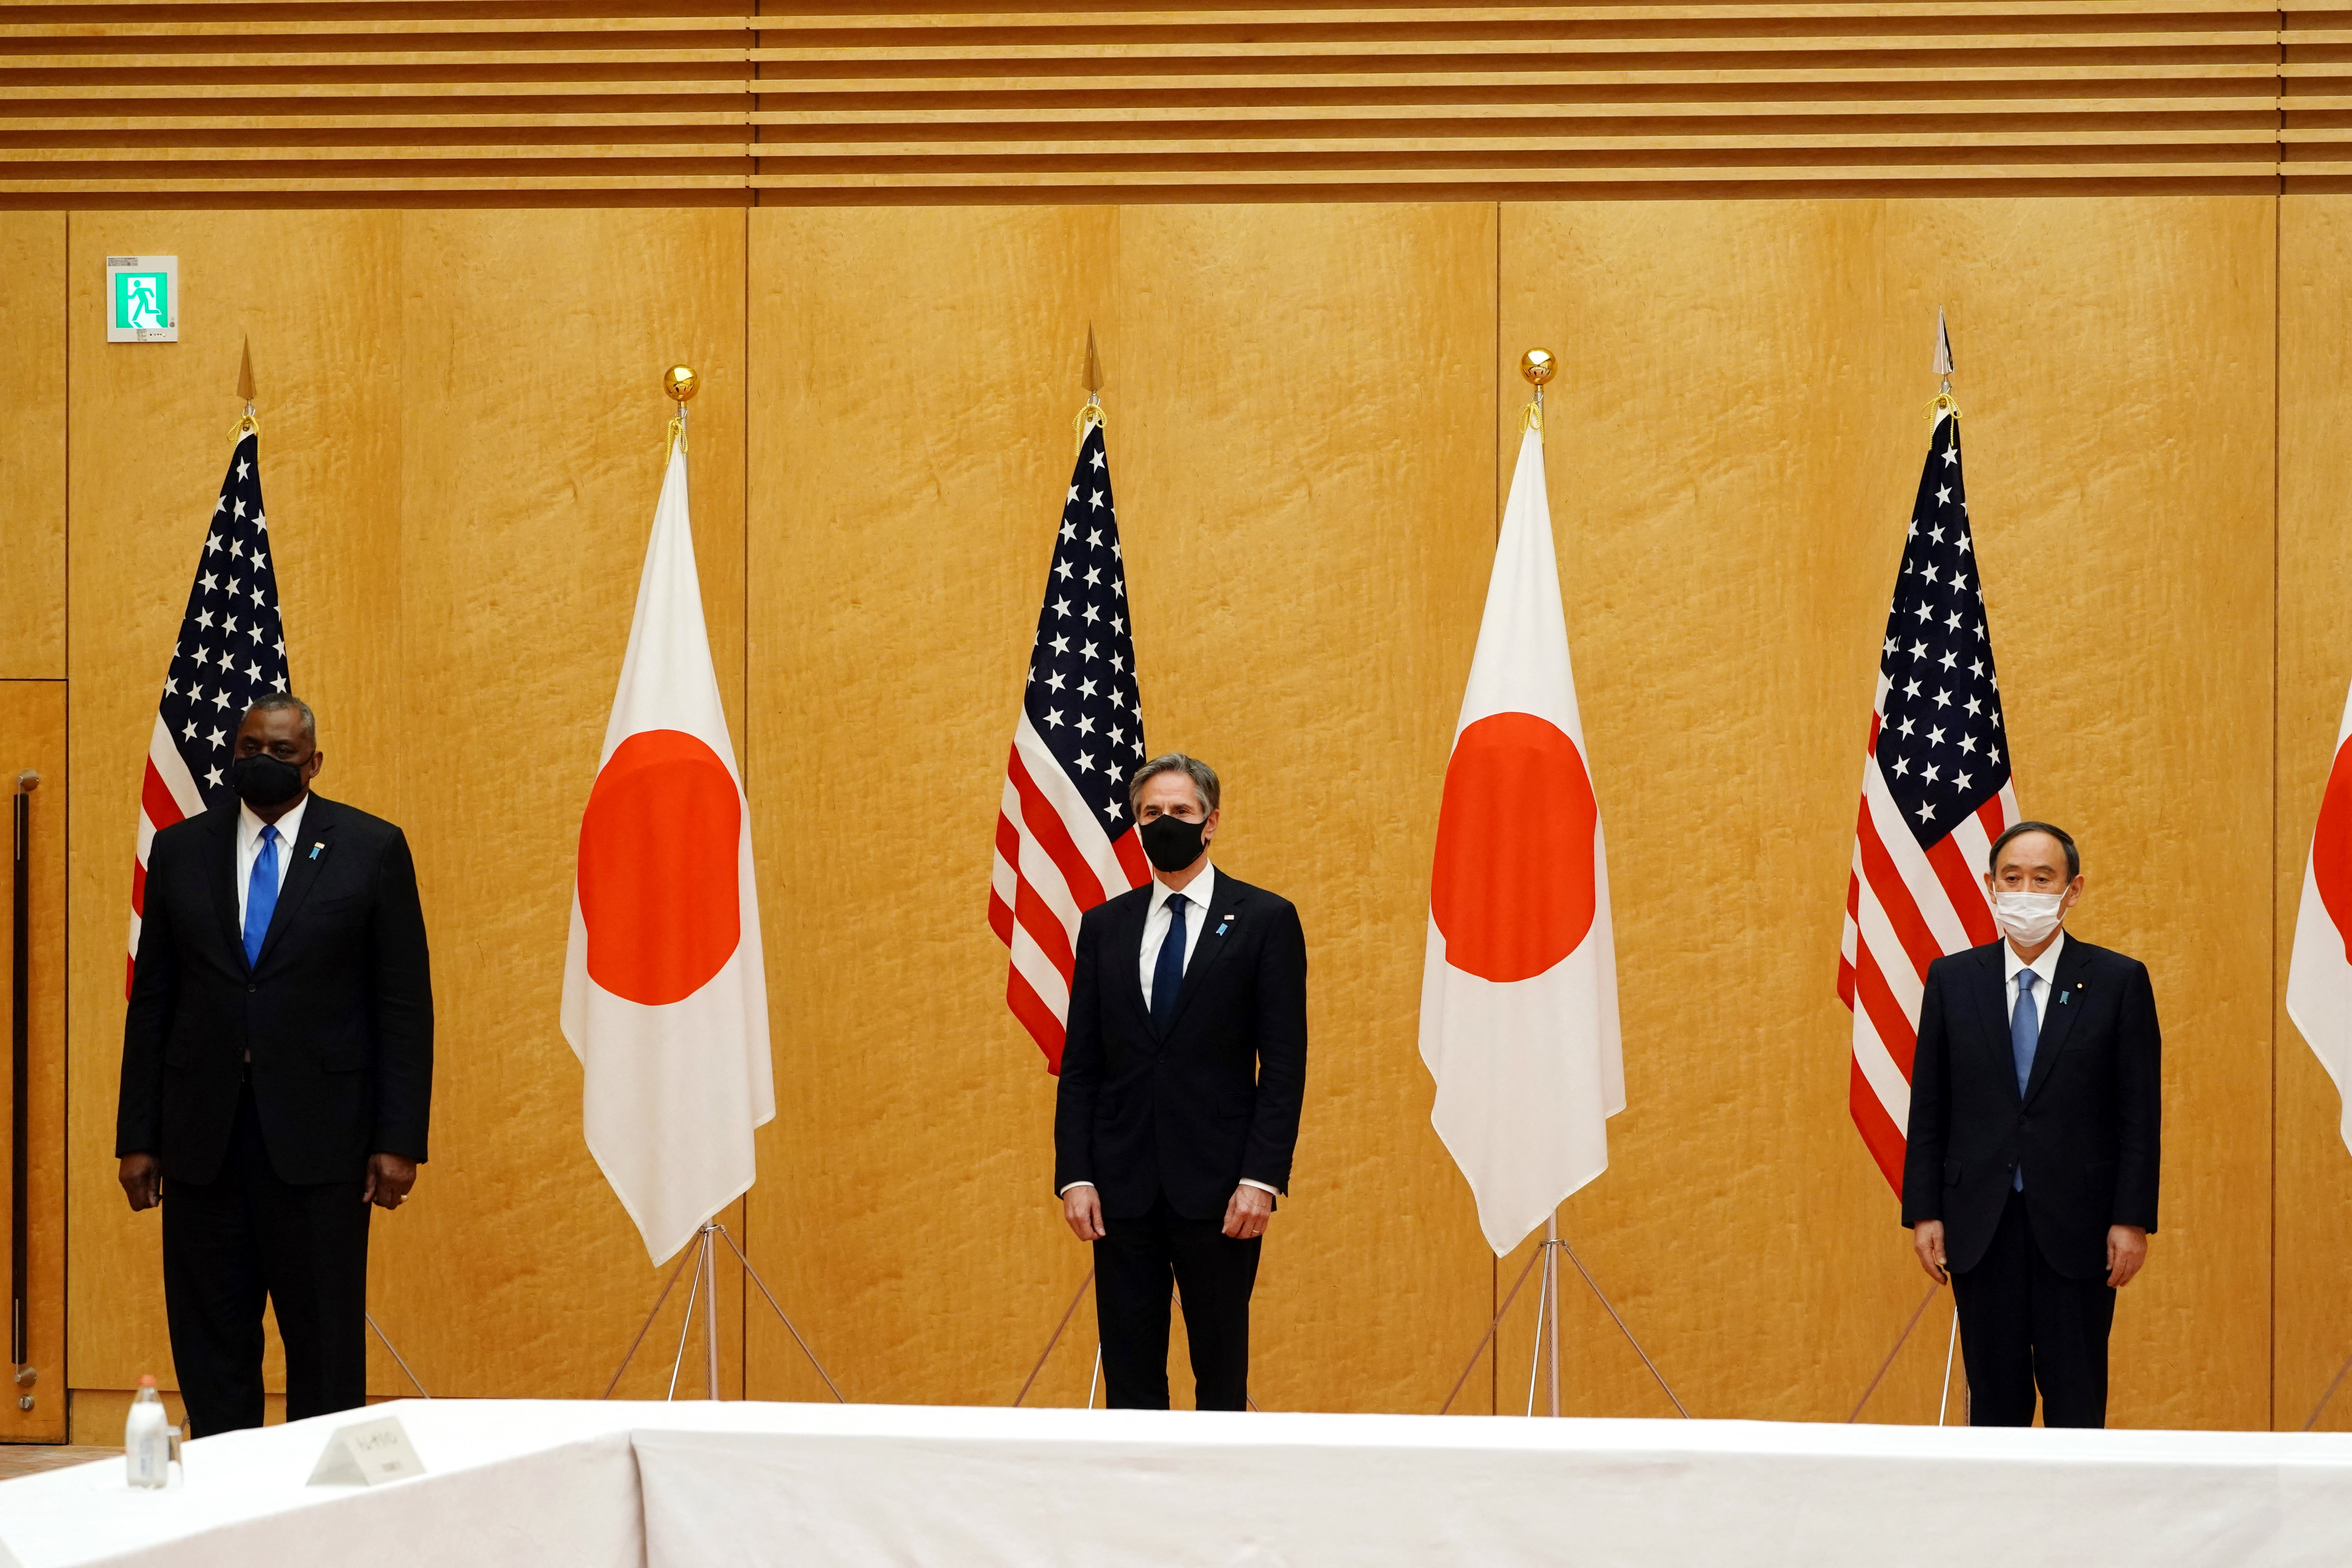 Japan's Prime Minister Yoshihide Suga (R) poses with U.S. Secretary of State Antony Blinken (C) and U.S. Defense Secretary Lloyd Austin (L) during a courtesy call at the prime minister's official residence in Tokyo on March 16, 2021.